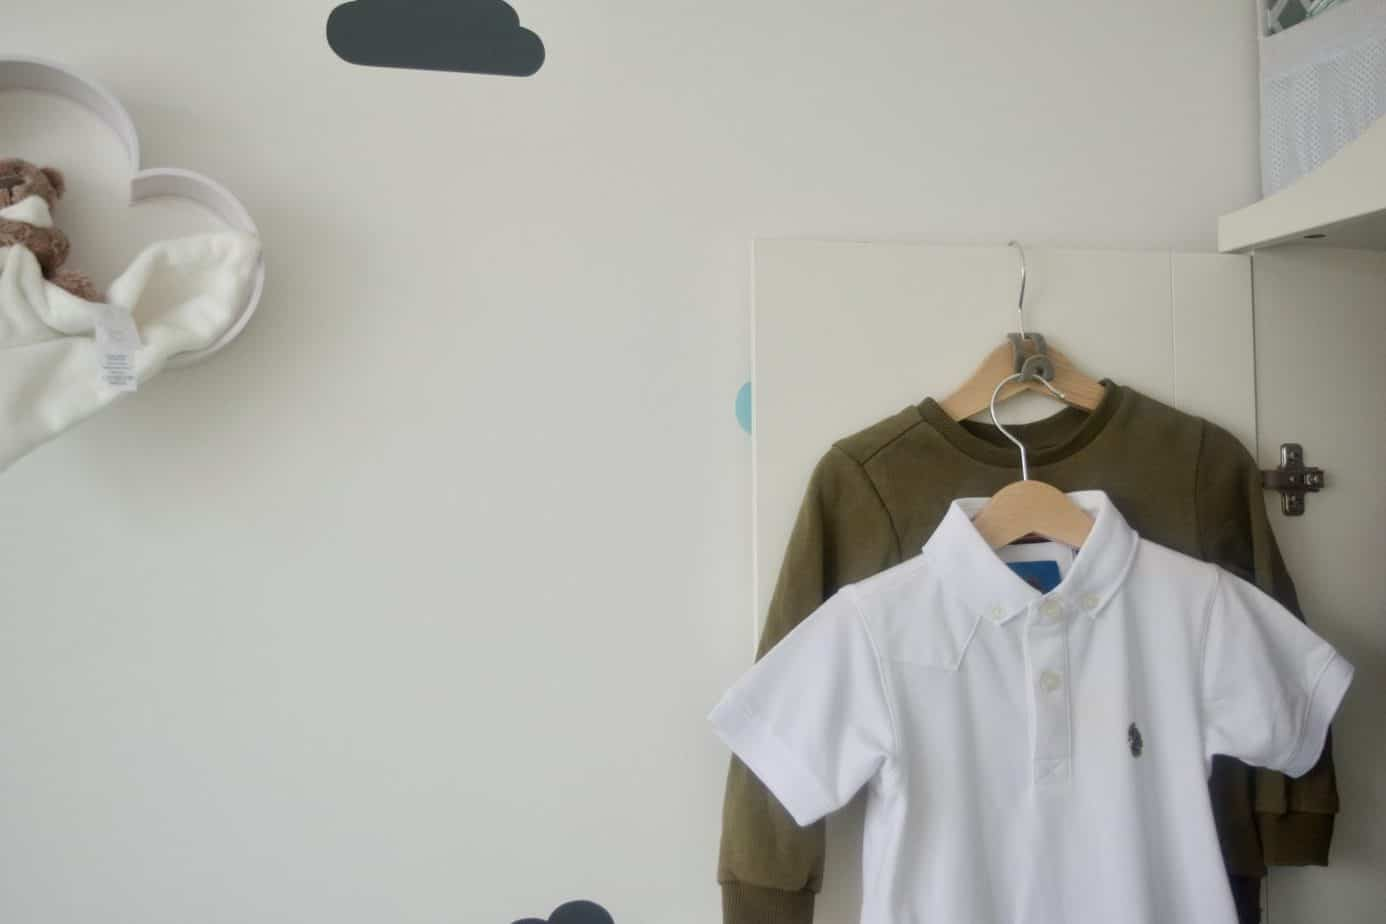 space savers on hanger showing an outfit for Baby K hanging on the inside of his open wardrobe door